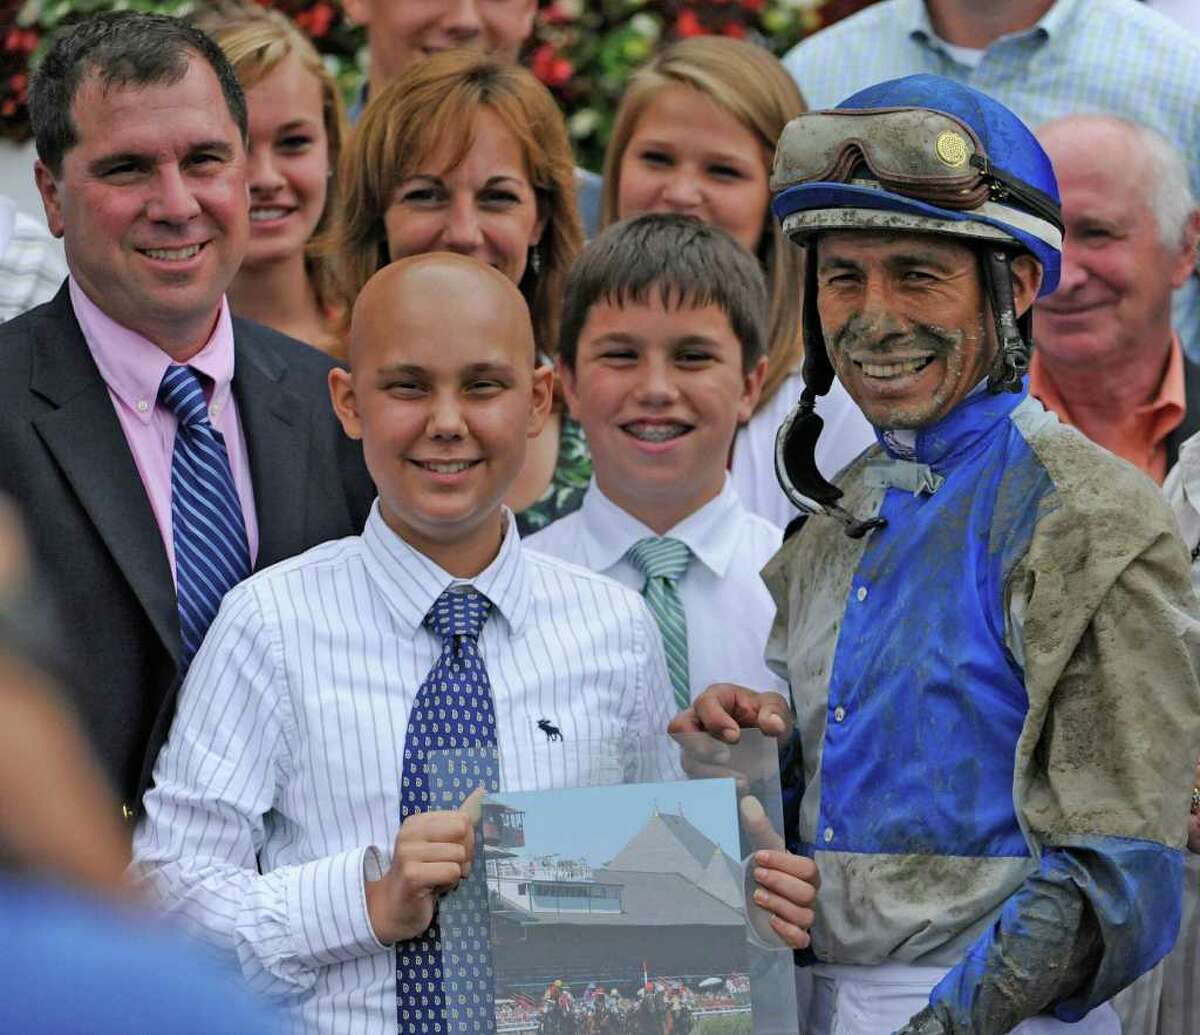 Luke Romano in the winners circle after a race named for him at the Saratoga Race Course in Saratoga Springs on Aug. 16, 2010. (Skip Dickstein/Times Union archive)